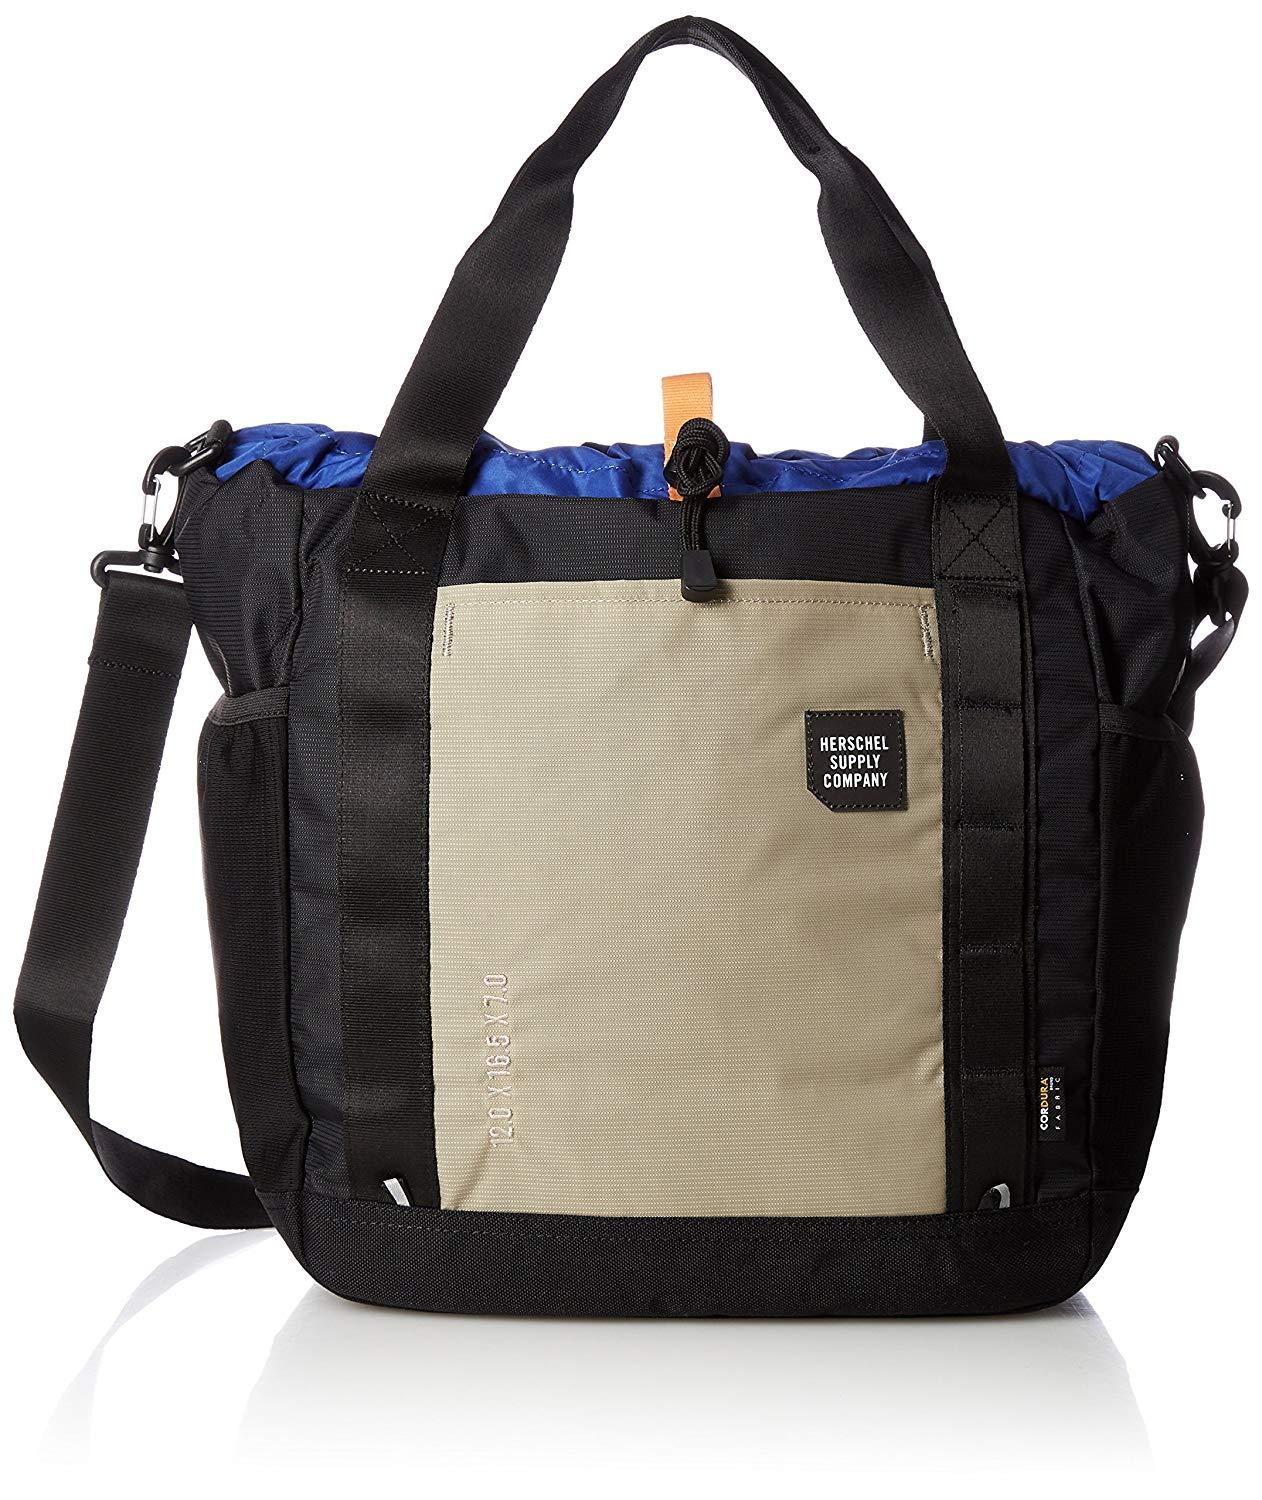 768c51cce9 Herschel Supply Co. Barnes Trail Tote Bag 2 Way Hand bag Crossbody Bag  Business Bag